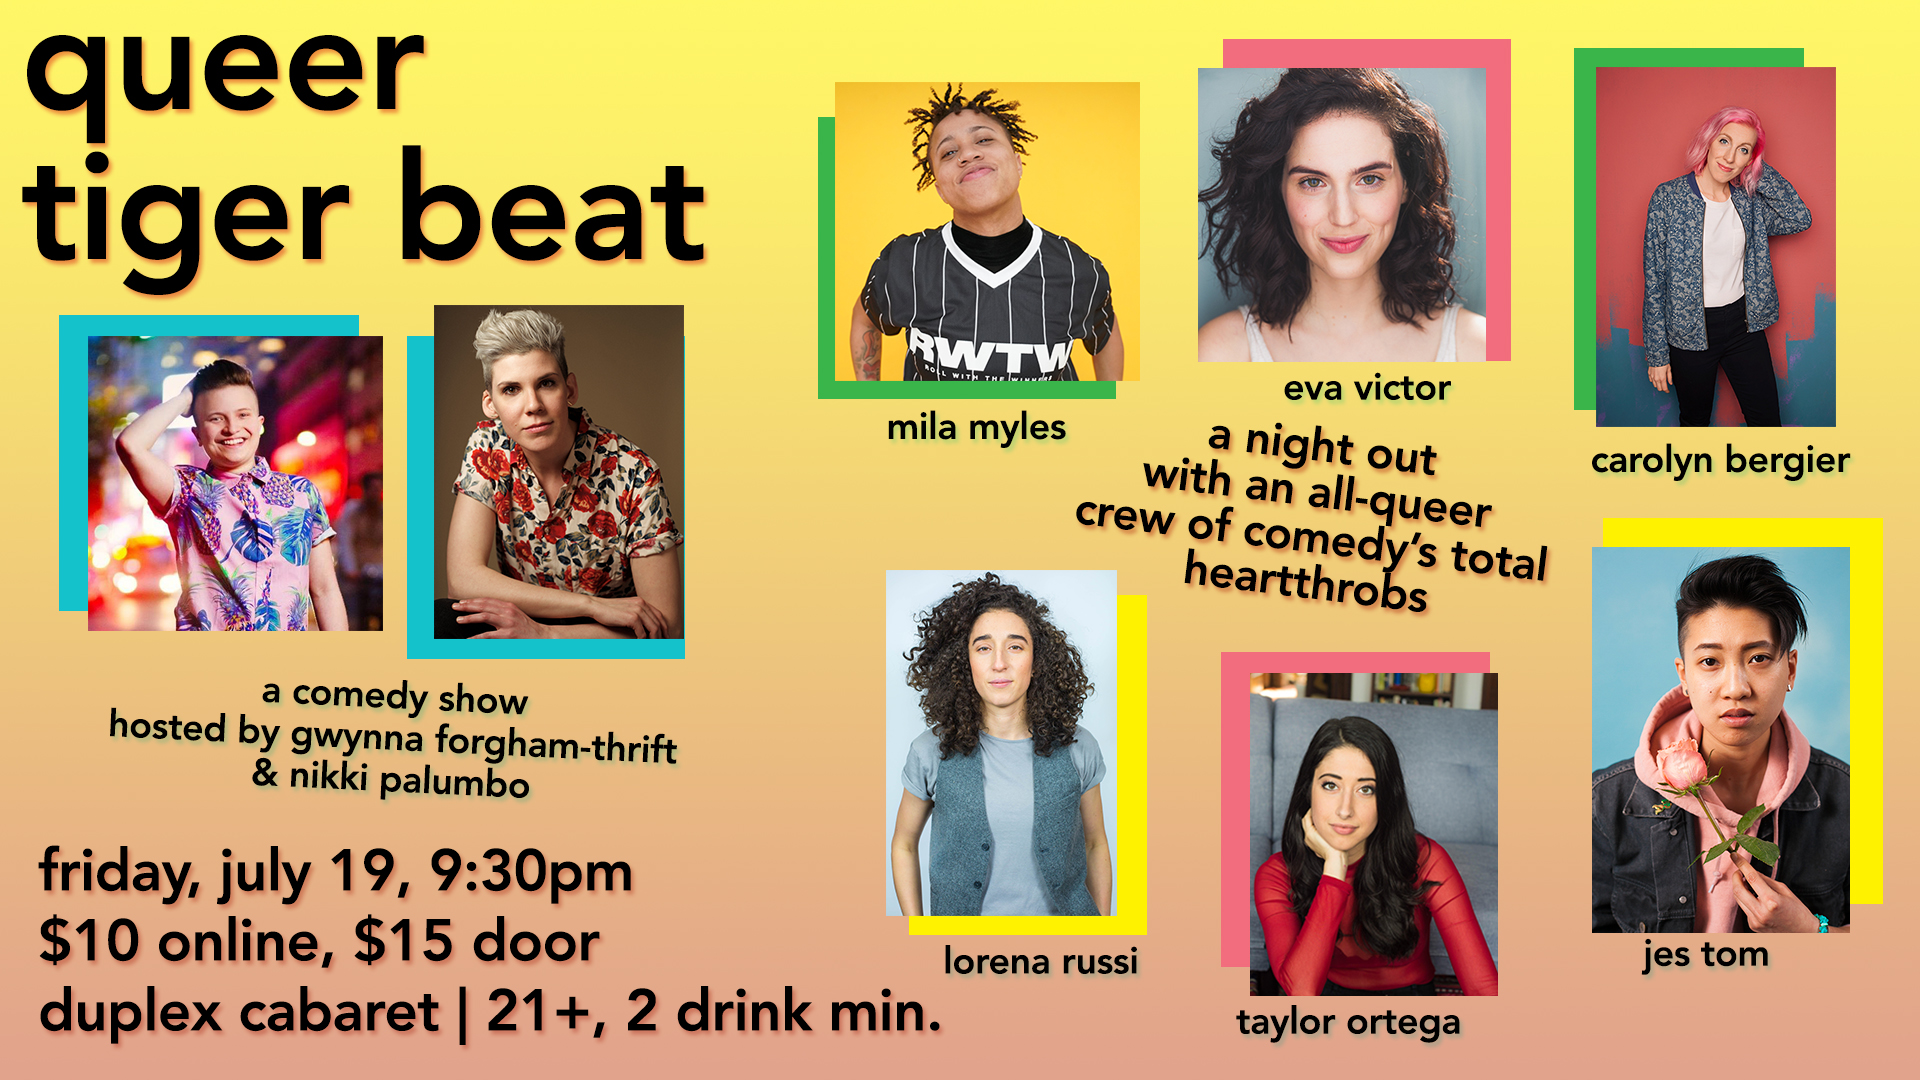 queer tiger beat poster